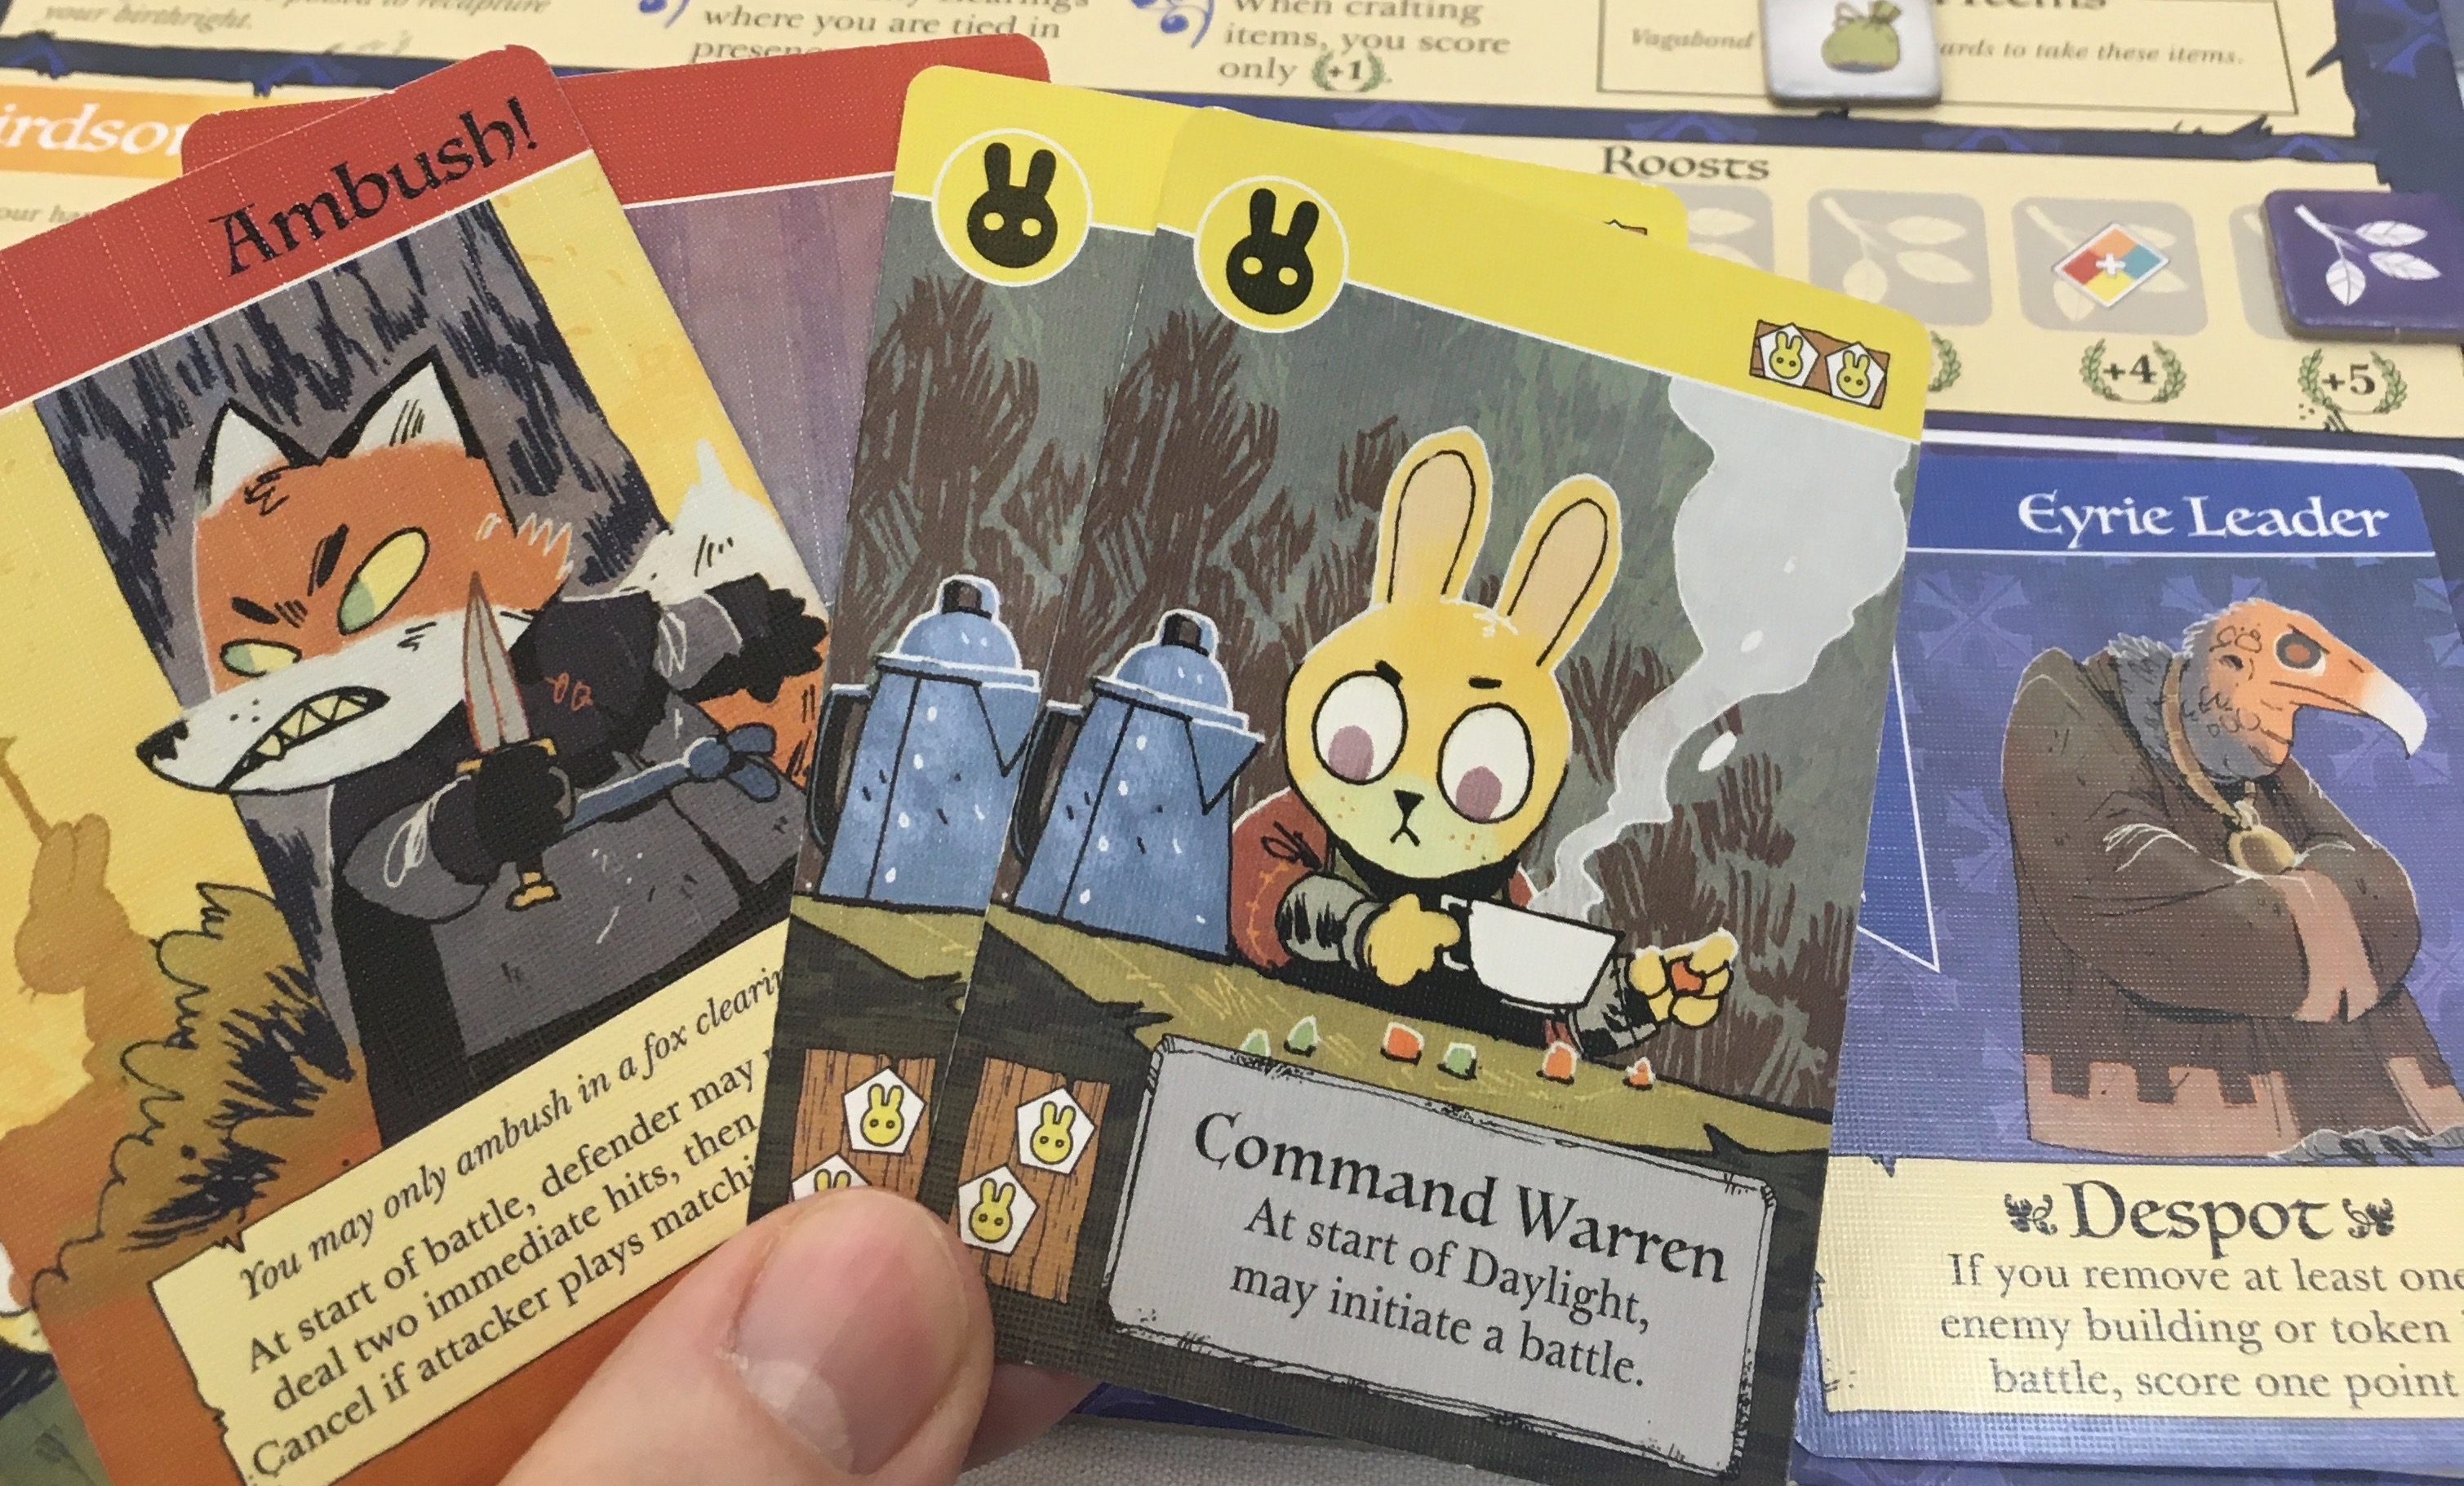 Photograph of several cards from the board game Root, featuring cartoon art of foxes and bunnies and birdies dressed for war.